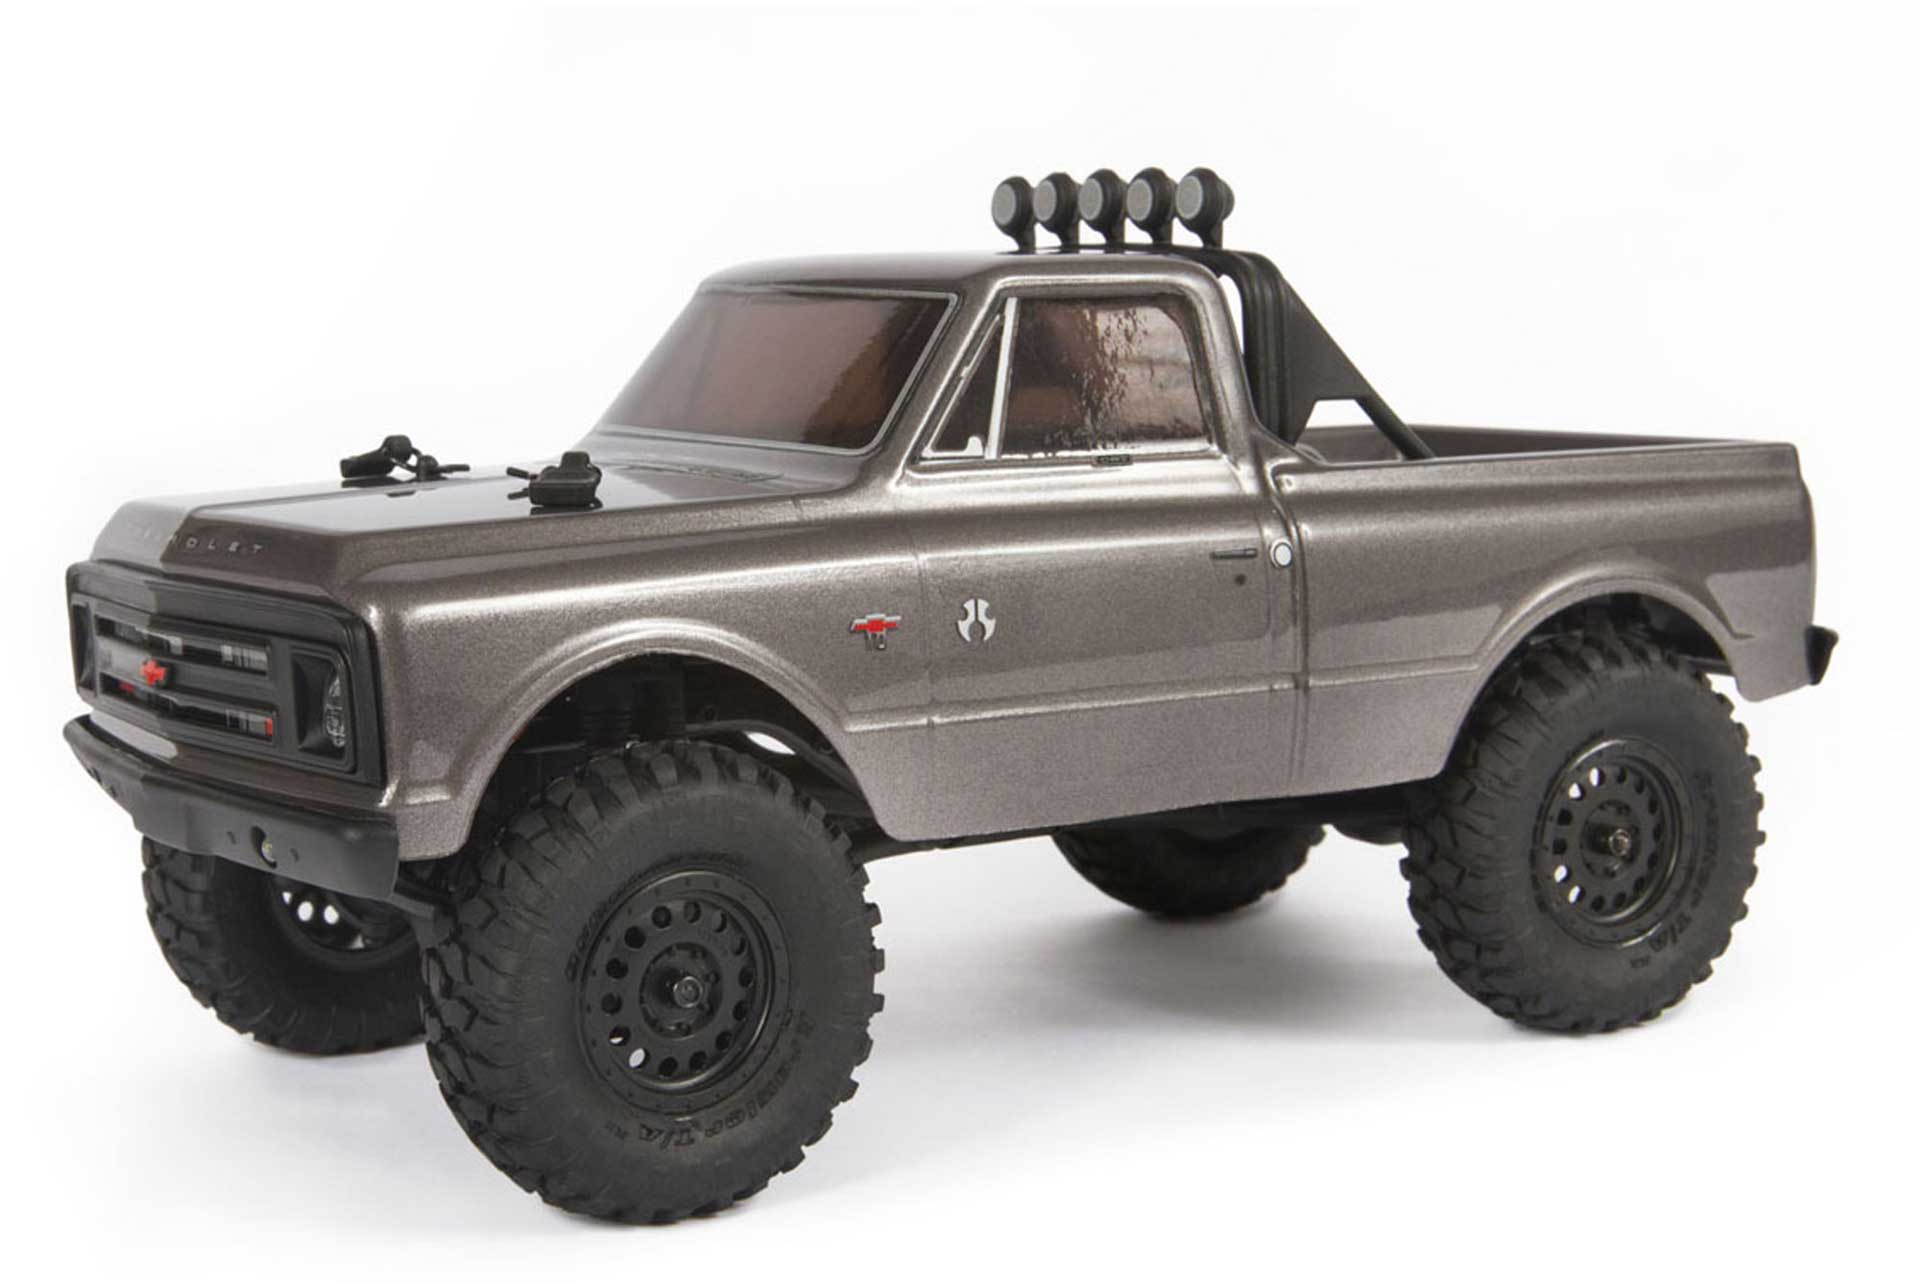 AXIAL SCX24™ 1967 CHEVROLET C10 TRUCK 1/24 ANTHRACITE SCALE RTR